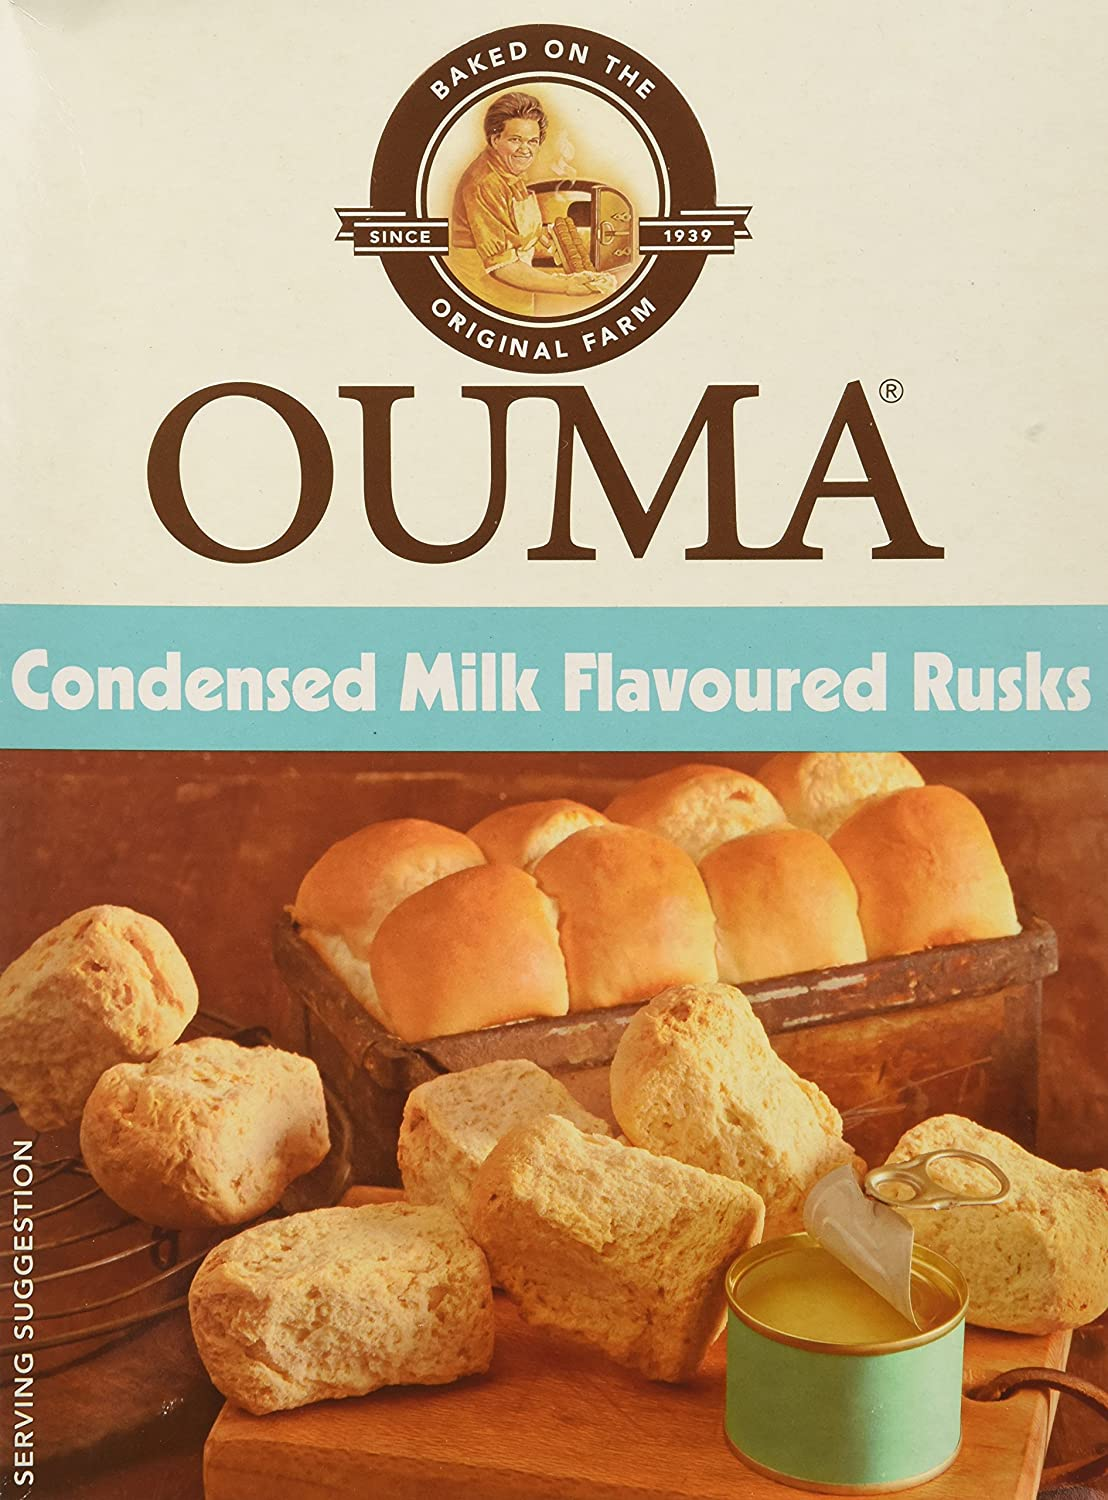 Nola Ouma Condensed Milk Rusks (2 Pack) Foodcorp Group (Pty) Ltd